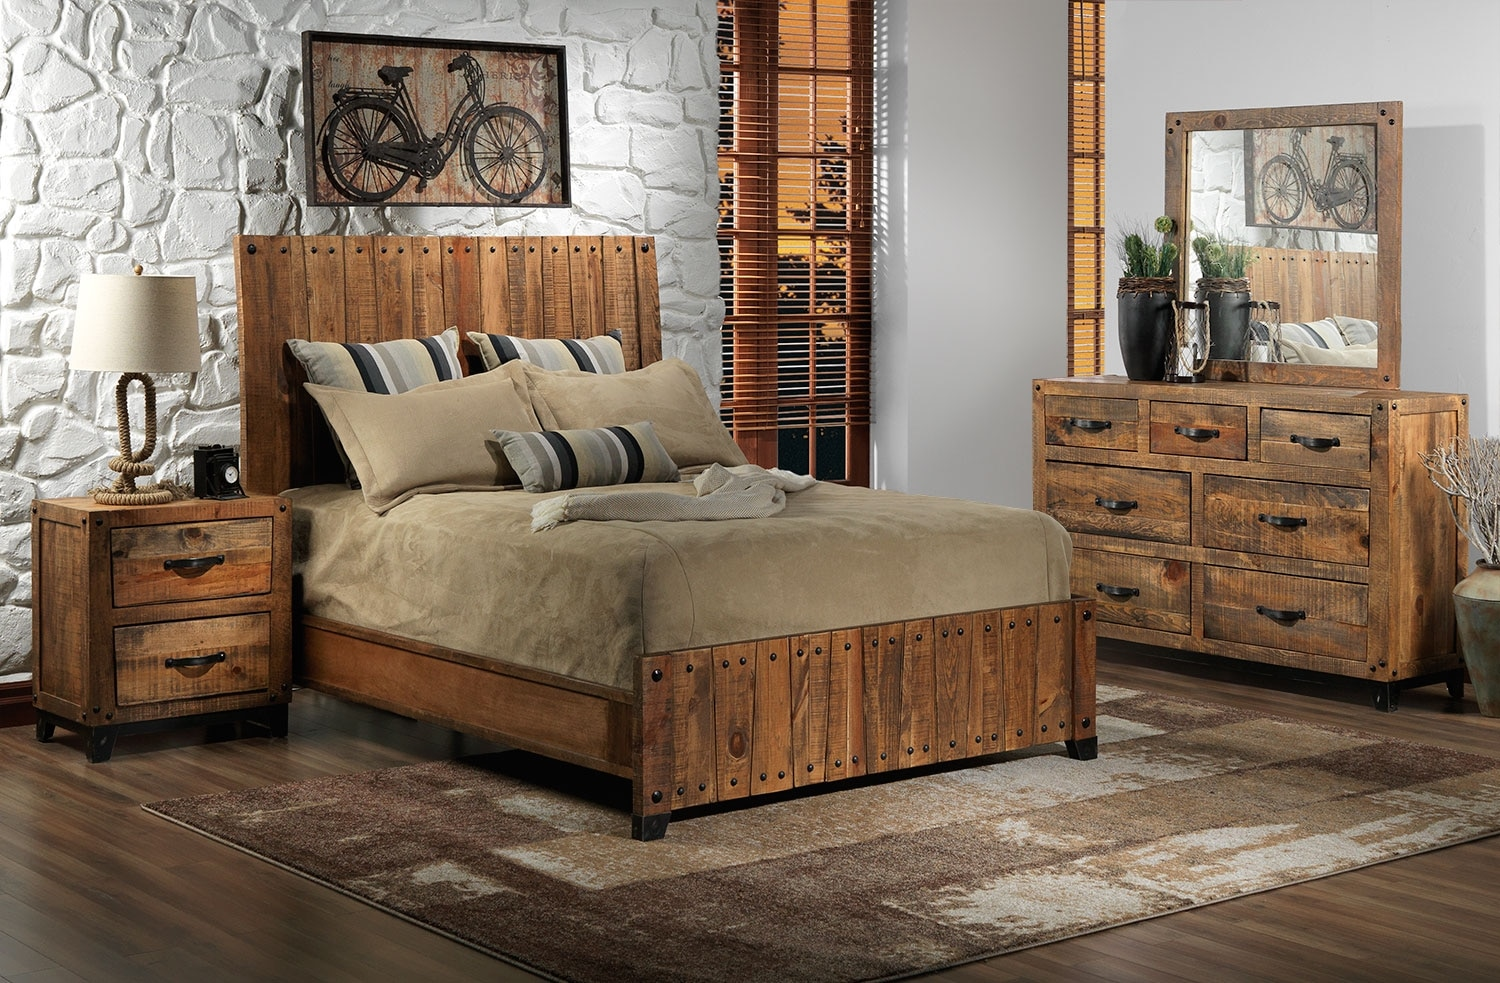 Bedroom Furniture - Maya 5-Piece King Bedroom Set - Rustic Pine